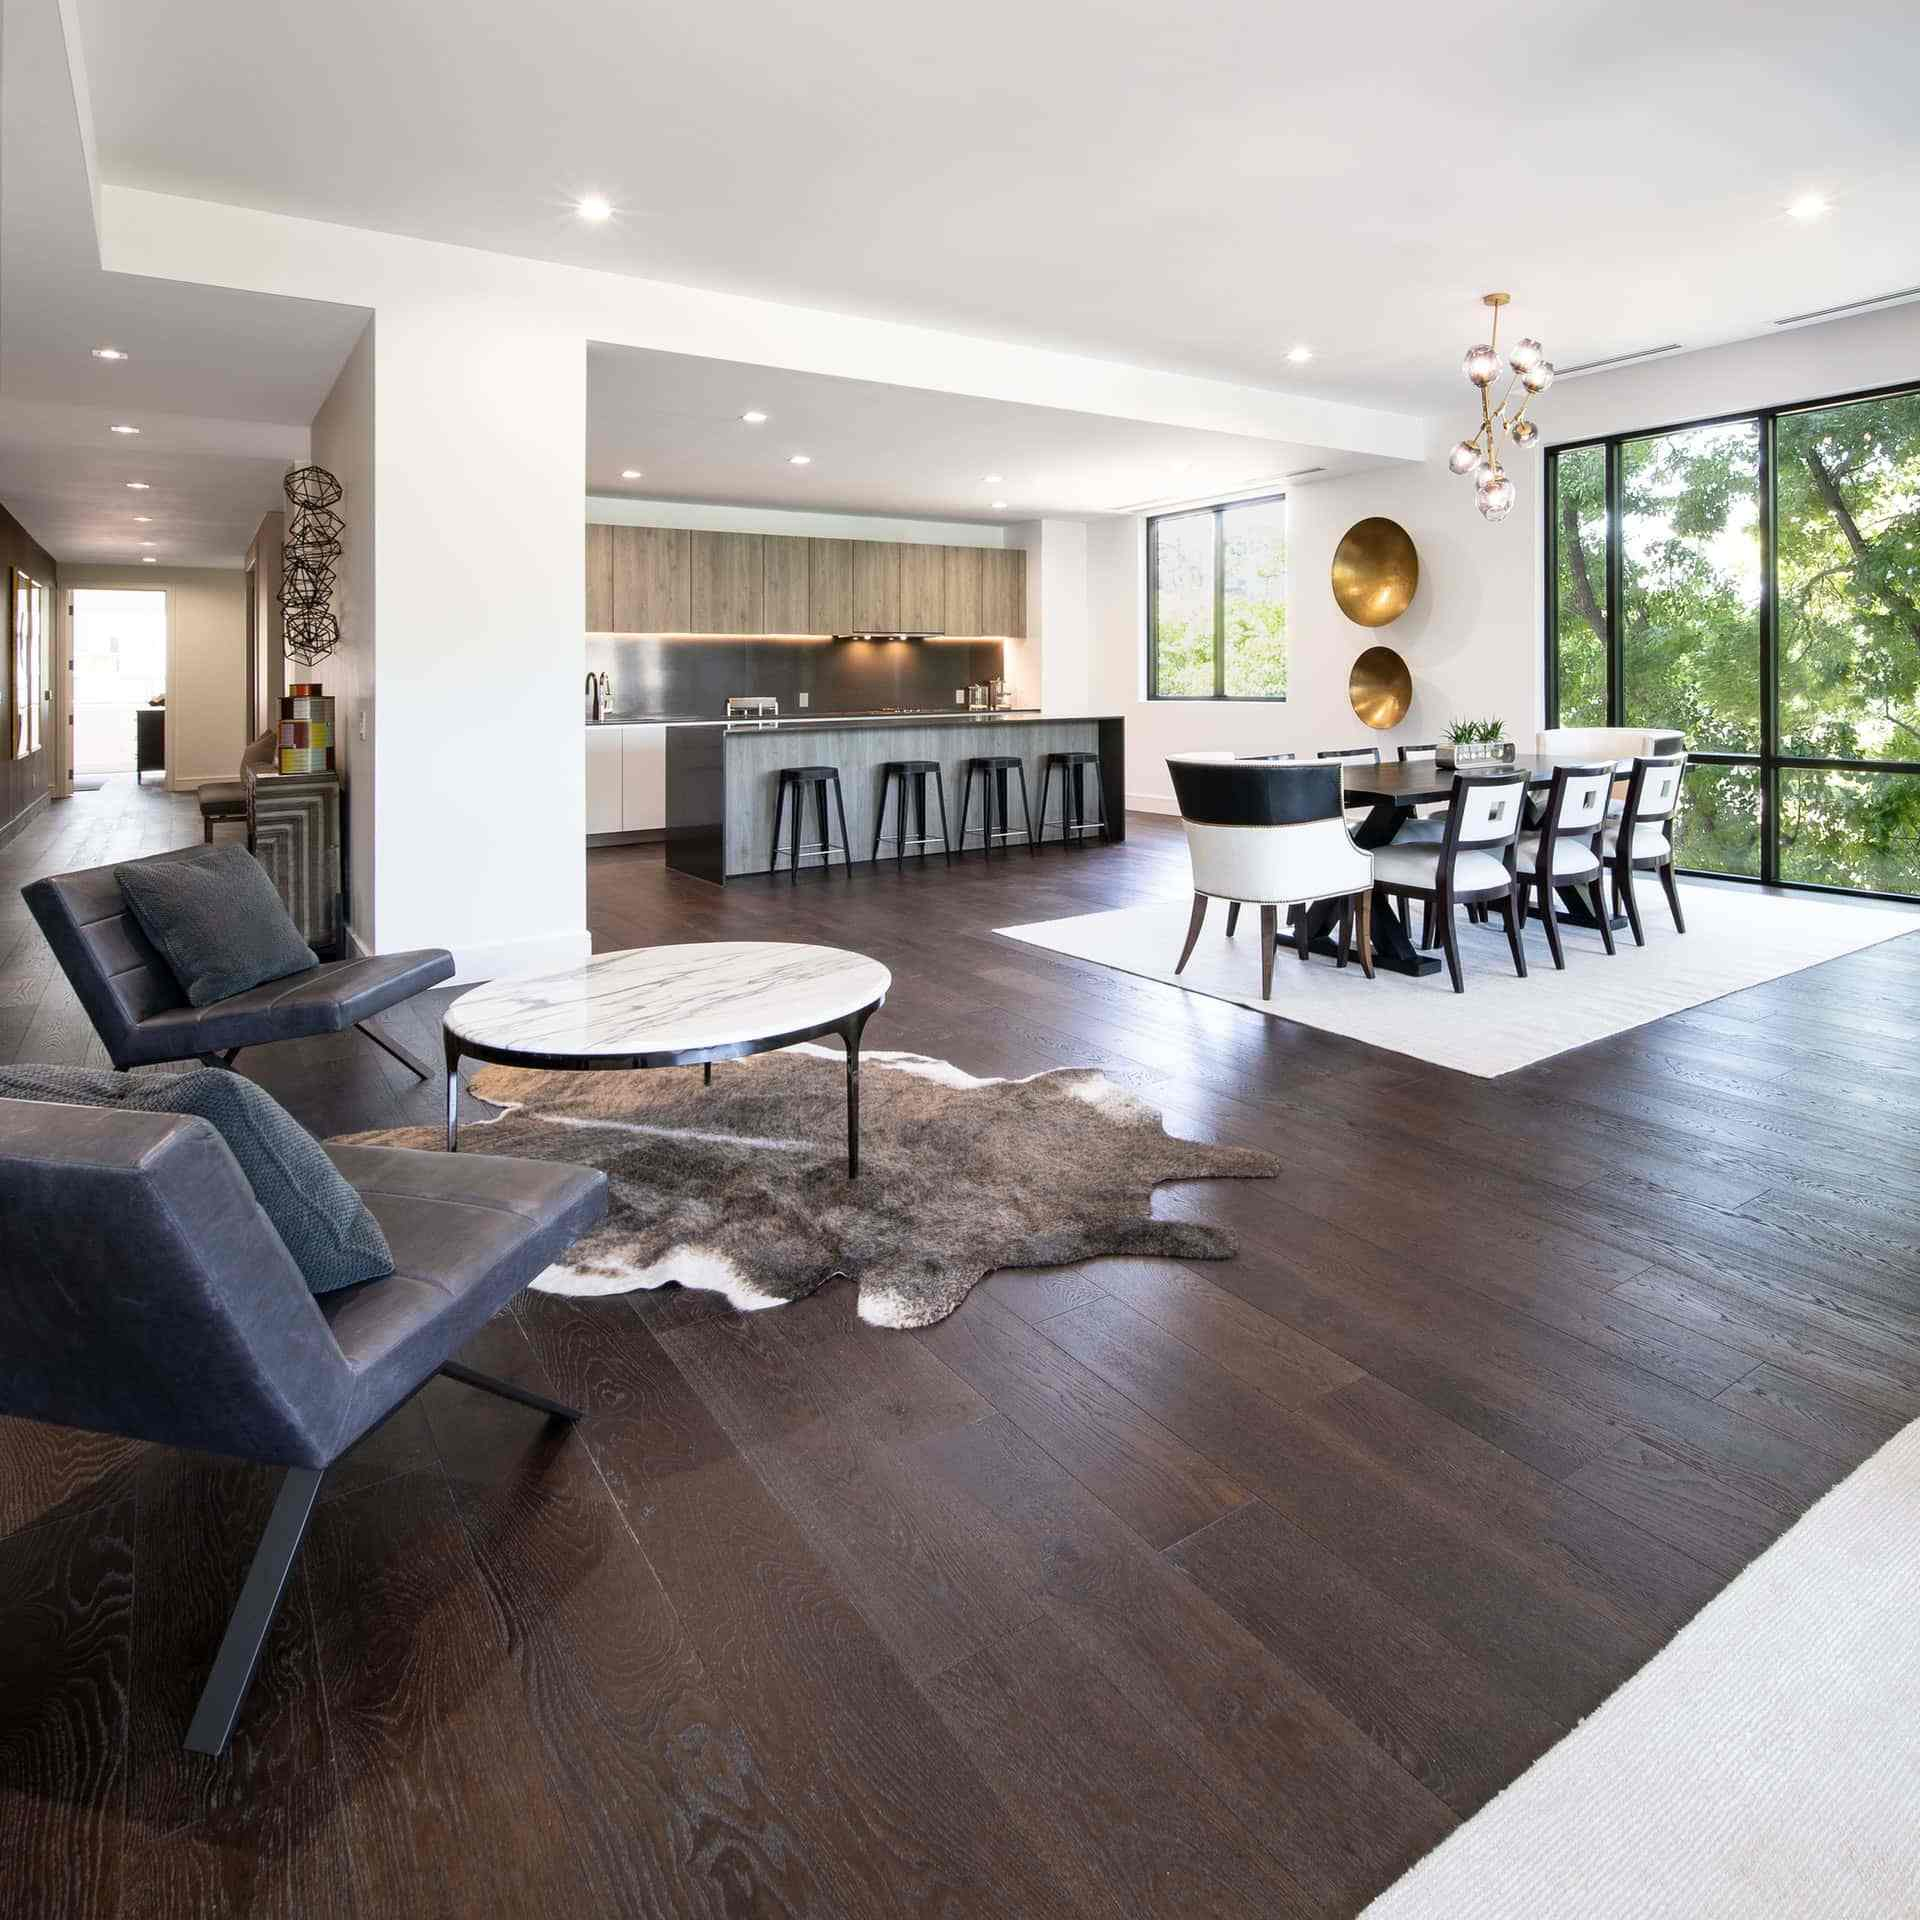 photo of dining room with wooden flooring